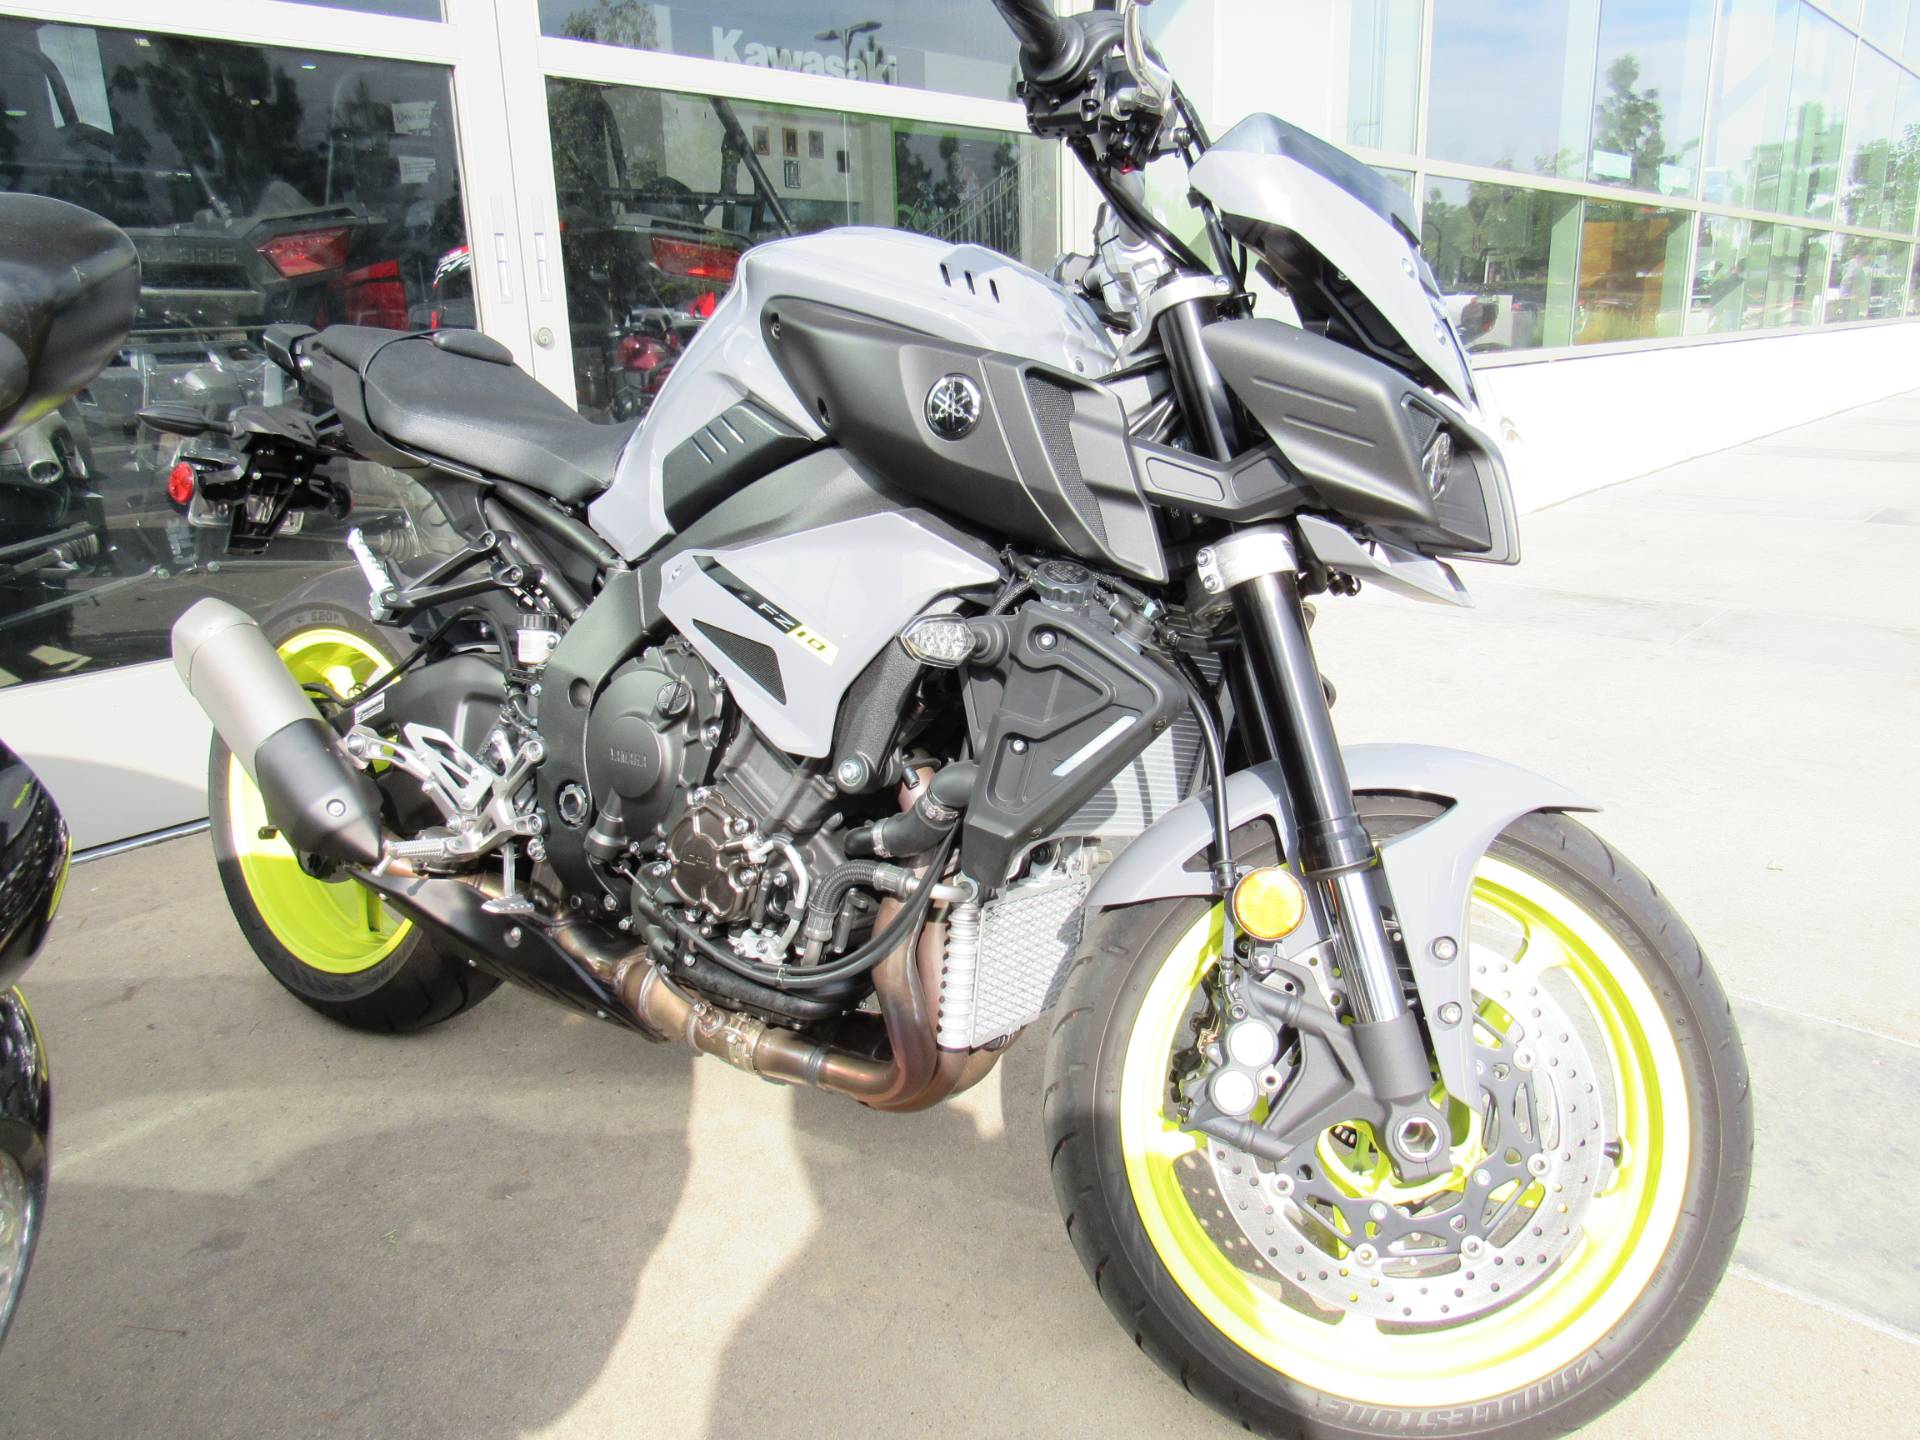 2017 Yamaha FZ-10 for sale 106756